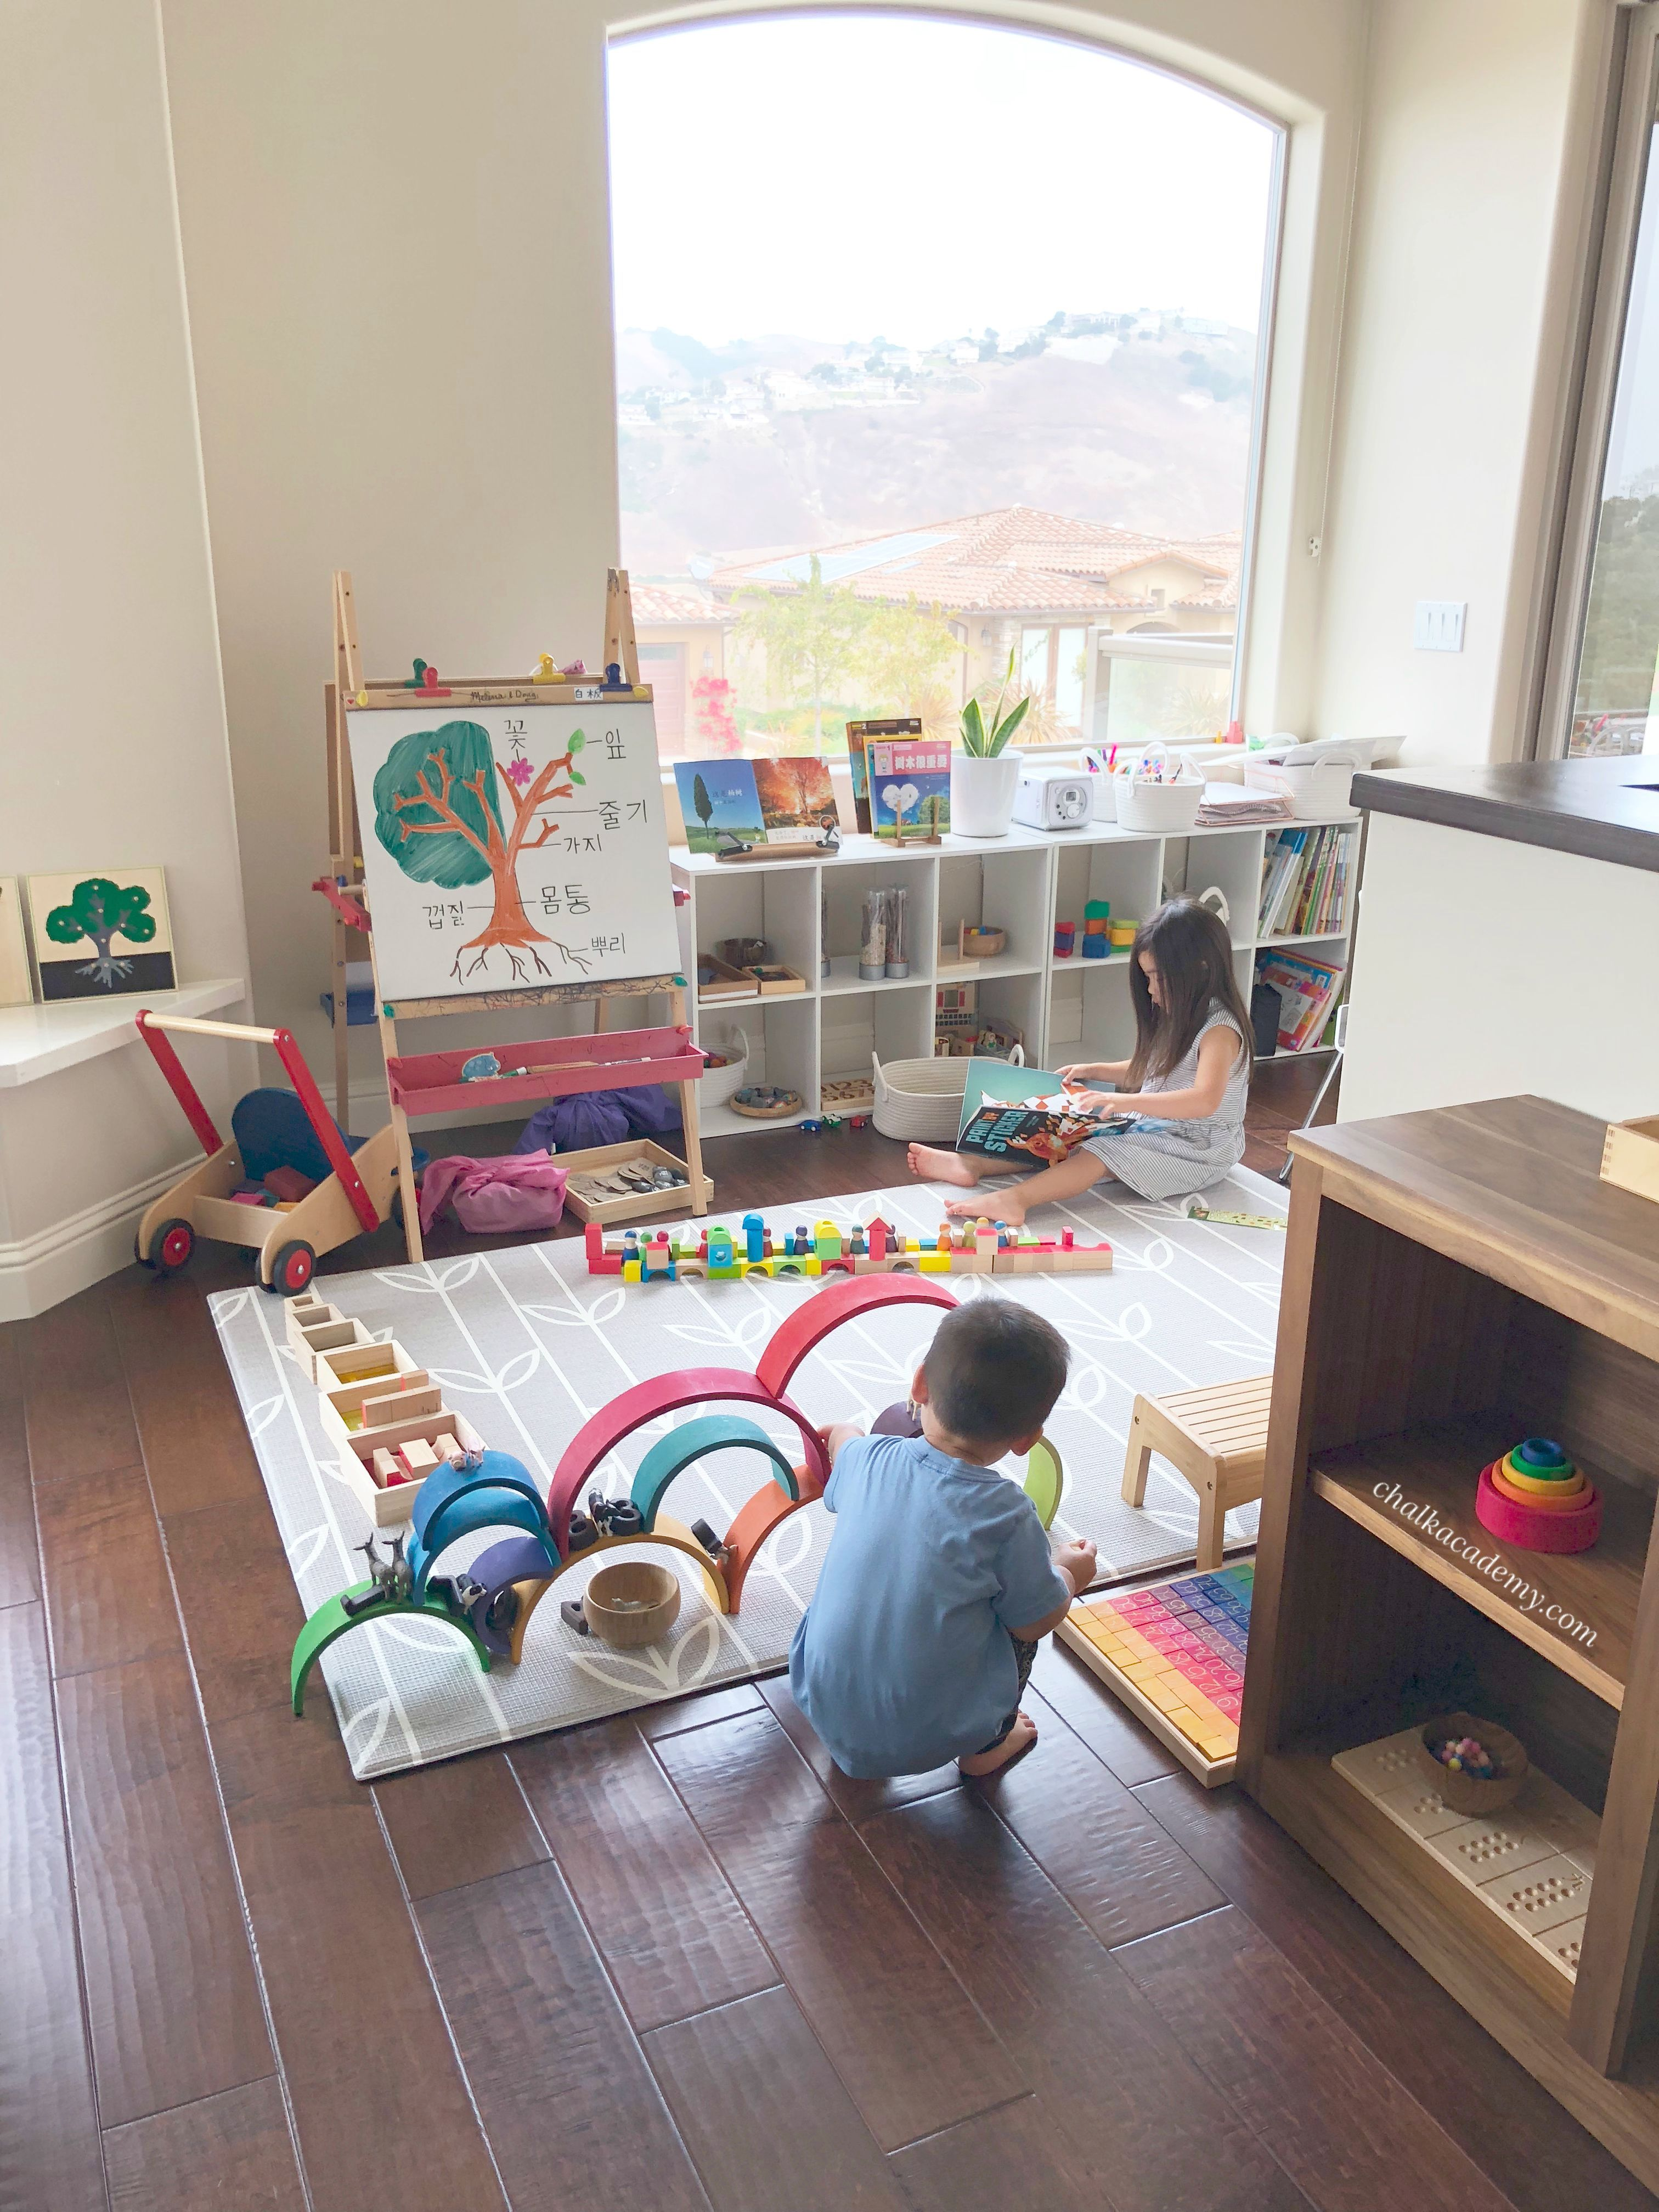 30 Best Playroom Ideas For Small And Large Spaces | For The Home